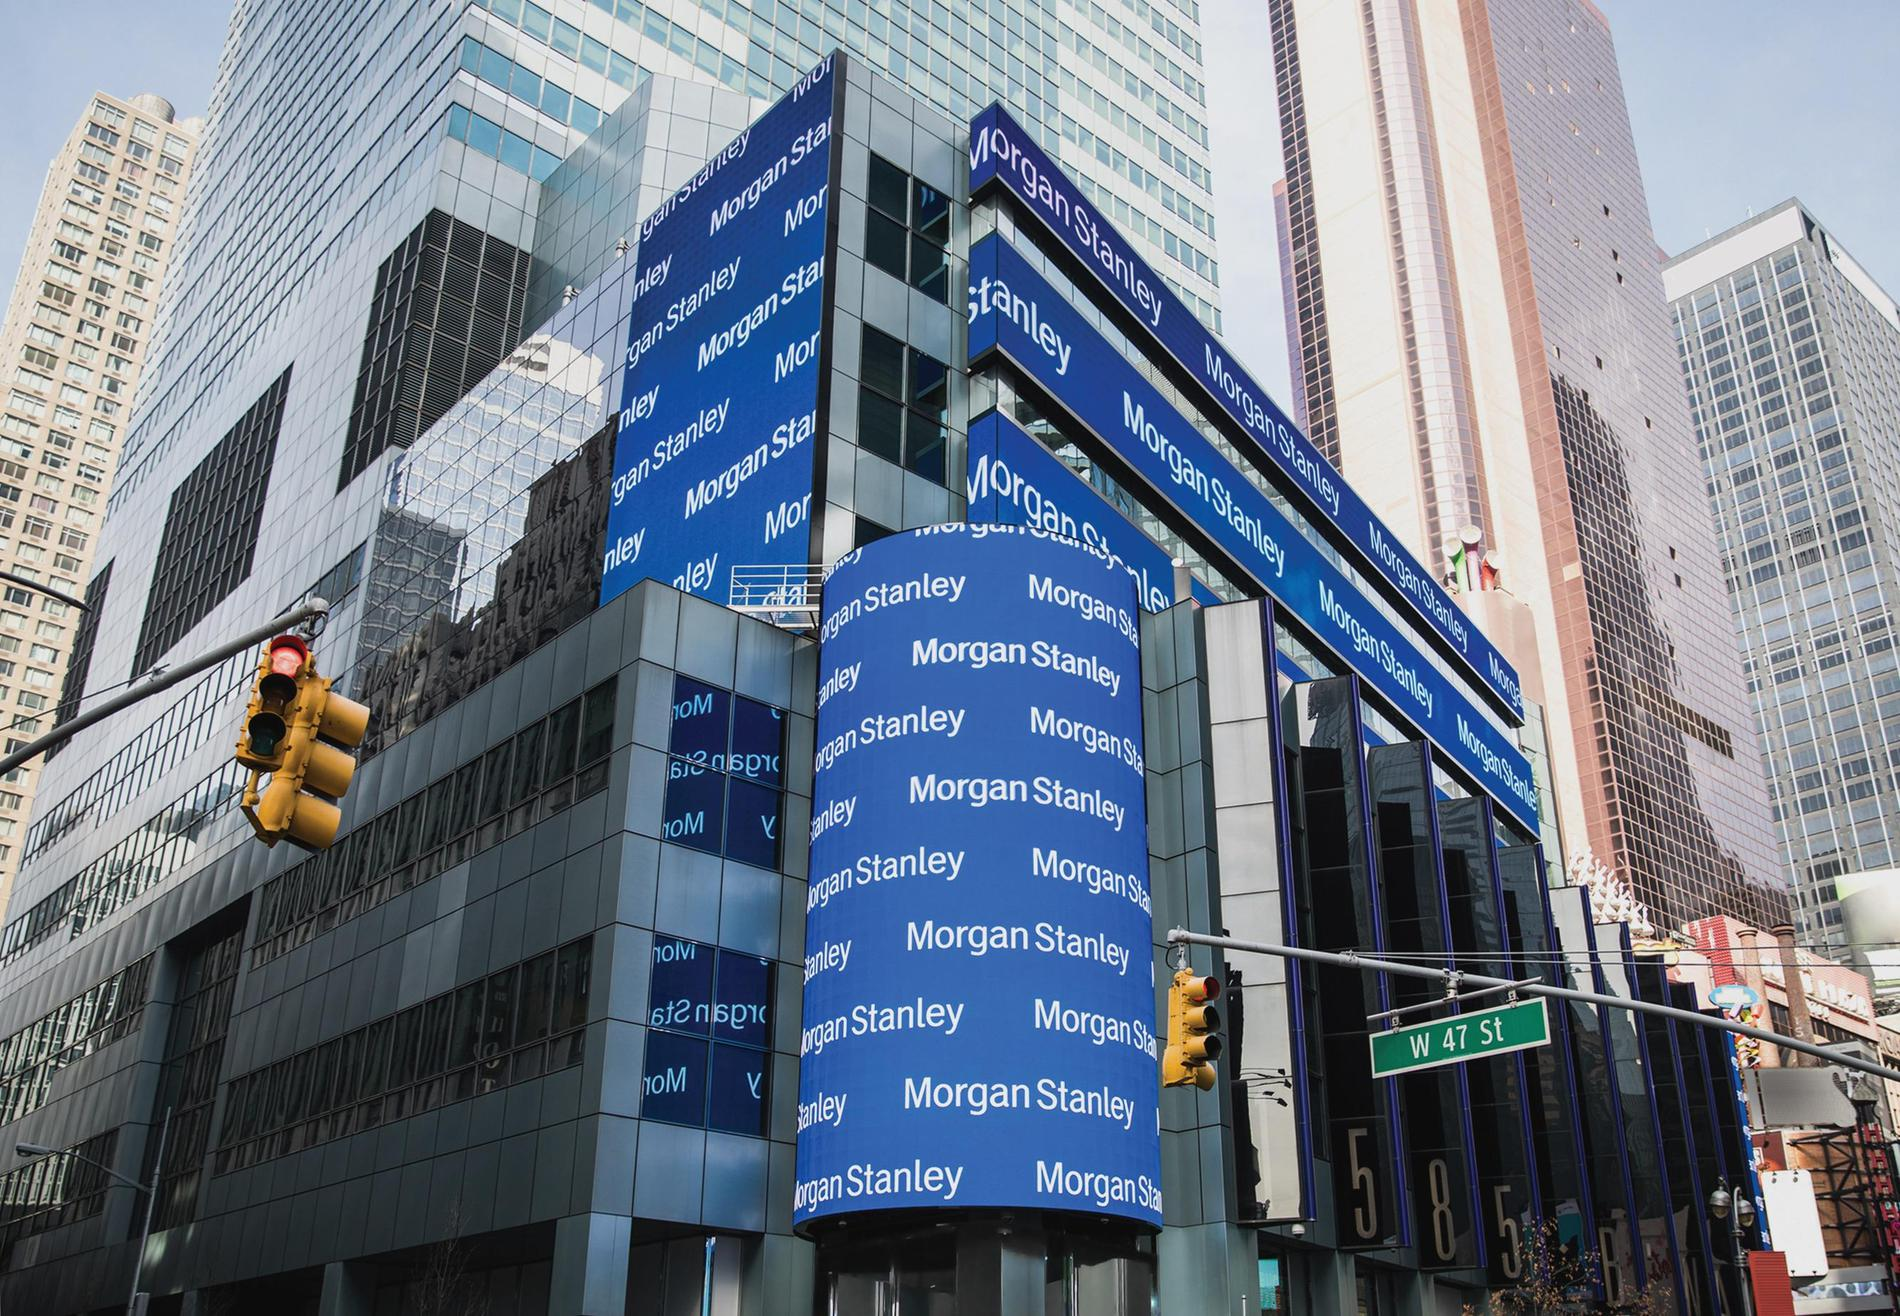 Morgan stanley investment management new york safe investment option in india